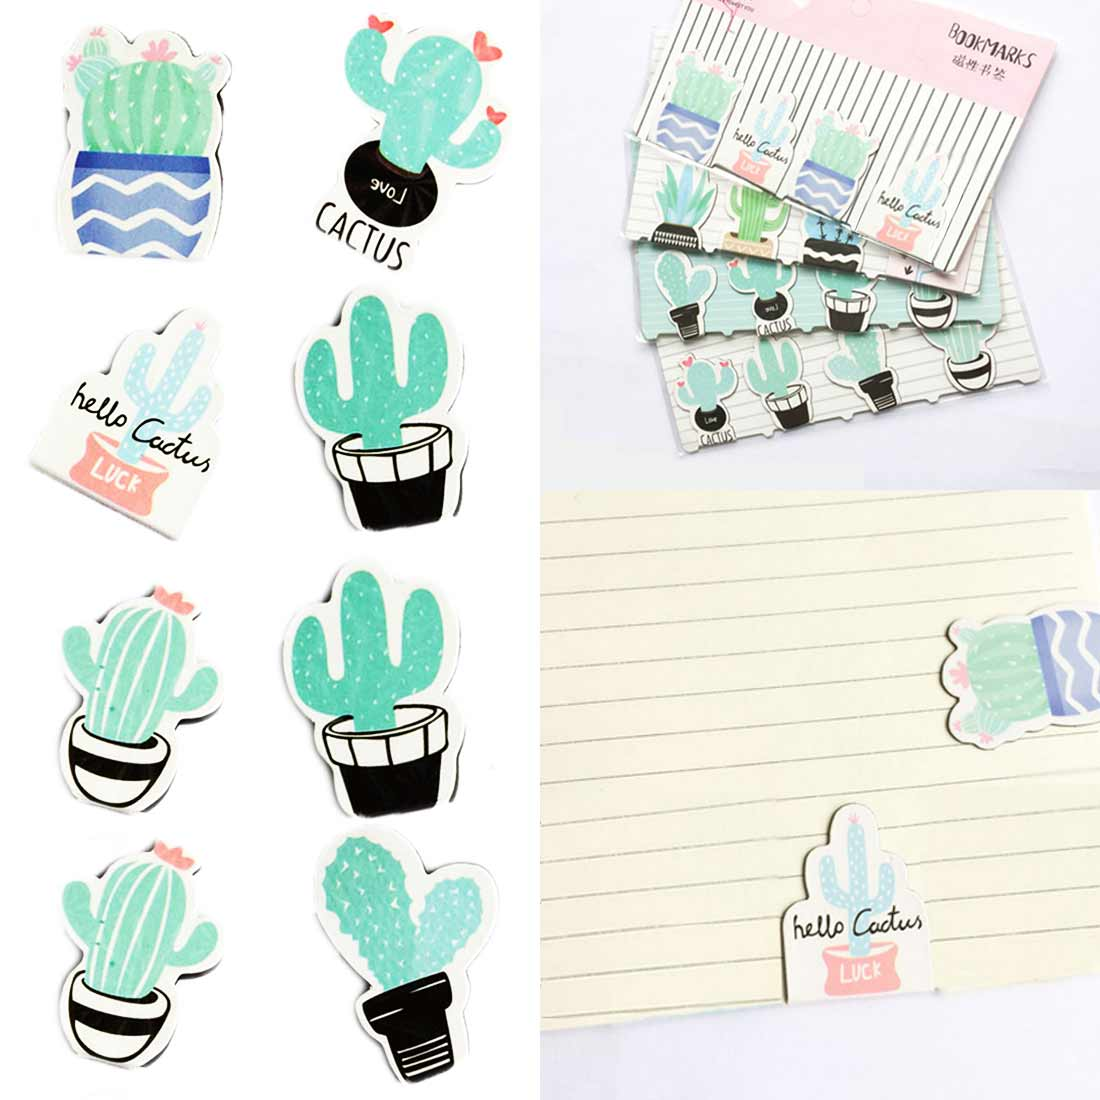 4 Pcs/pack Cactus Naked Bookmark Paper Clip School Office Supply Escolar Papelaria Gift Stationery